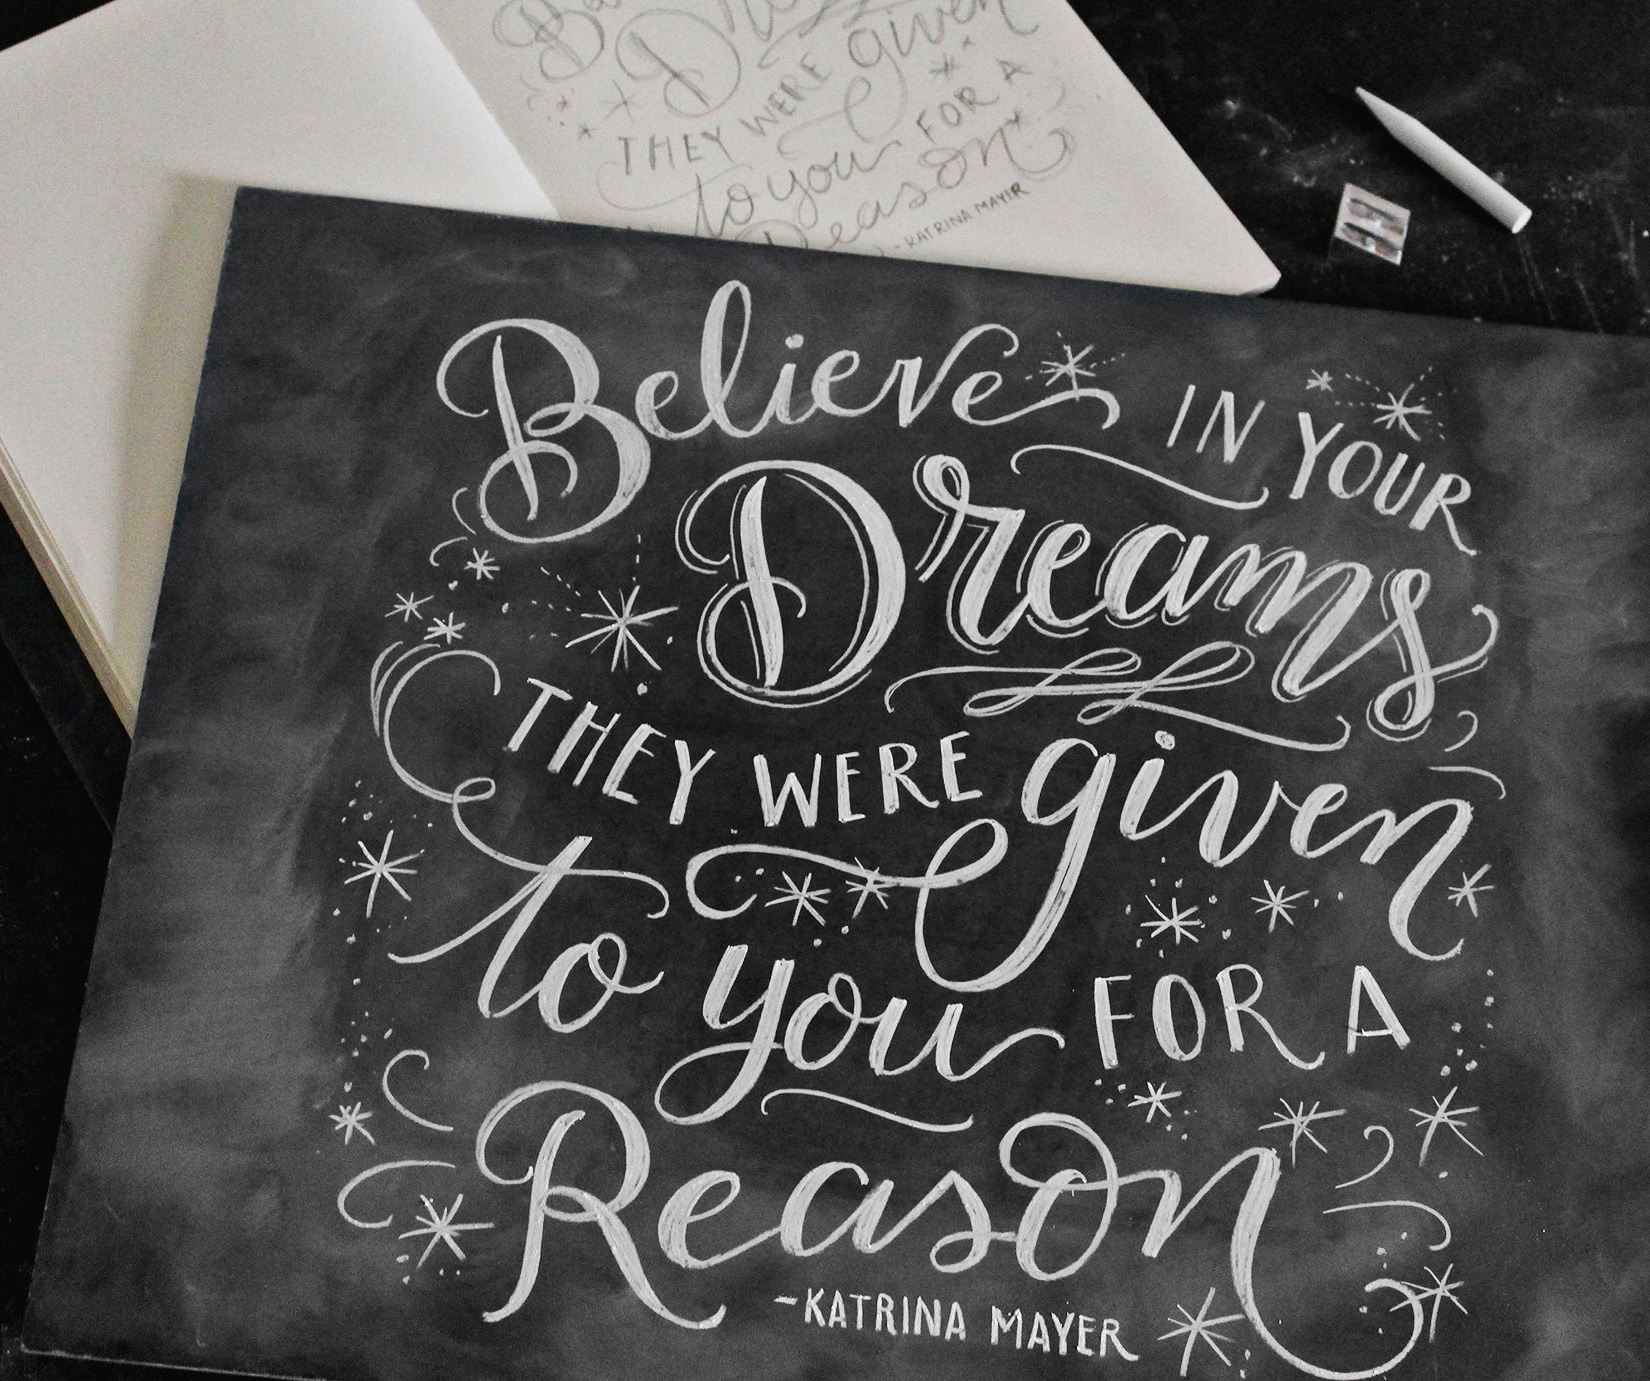 Finished chalk art design - Believe in your dreams, they were given to you for a reason!